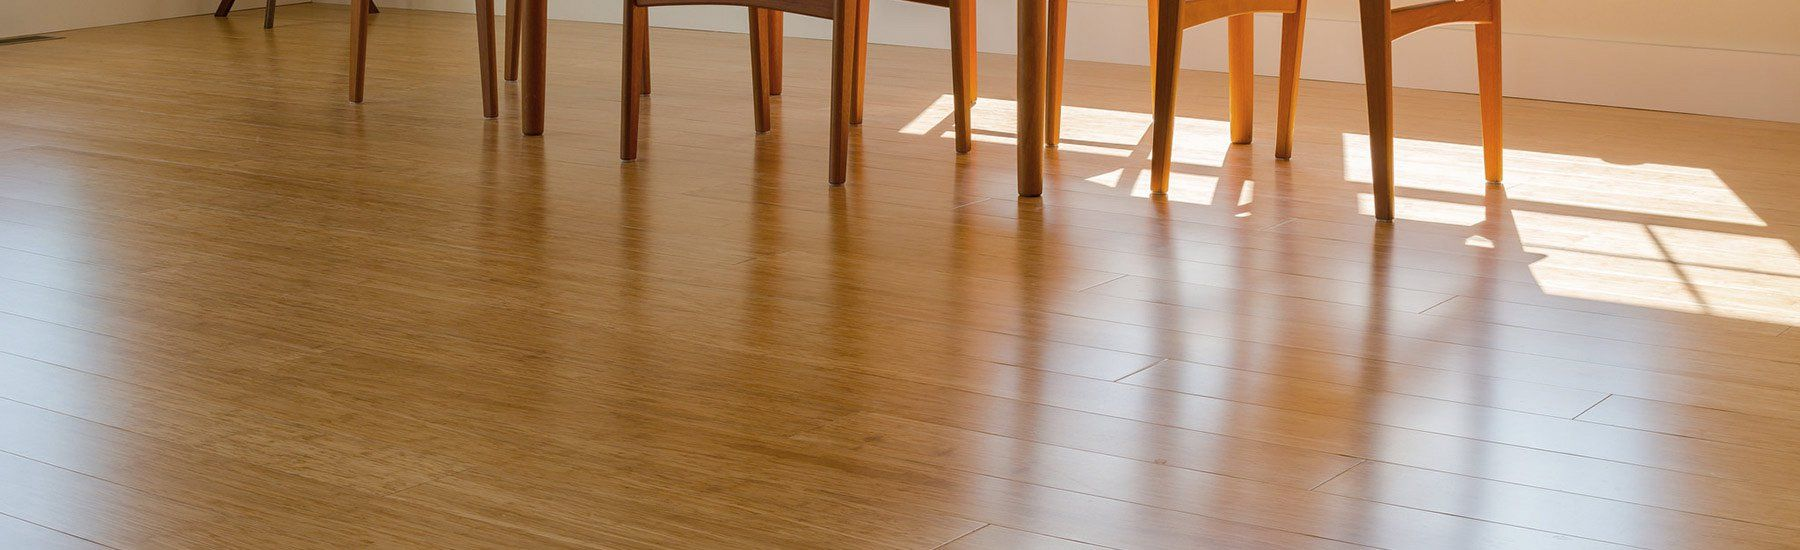 Luxury Vinyl Plank - Natural Wide+ Click Flooring - Cali Bamboo